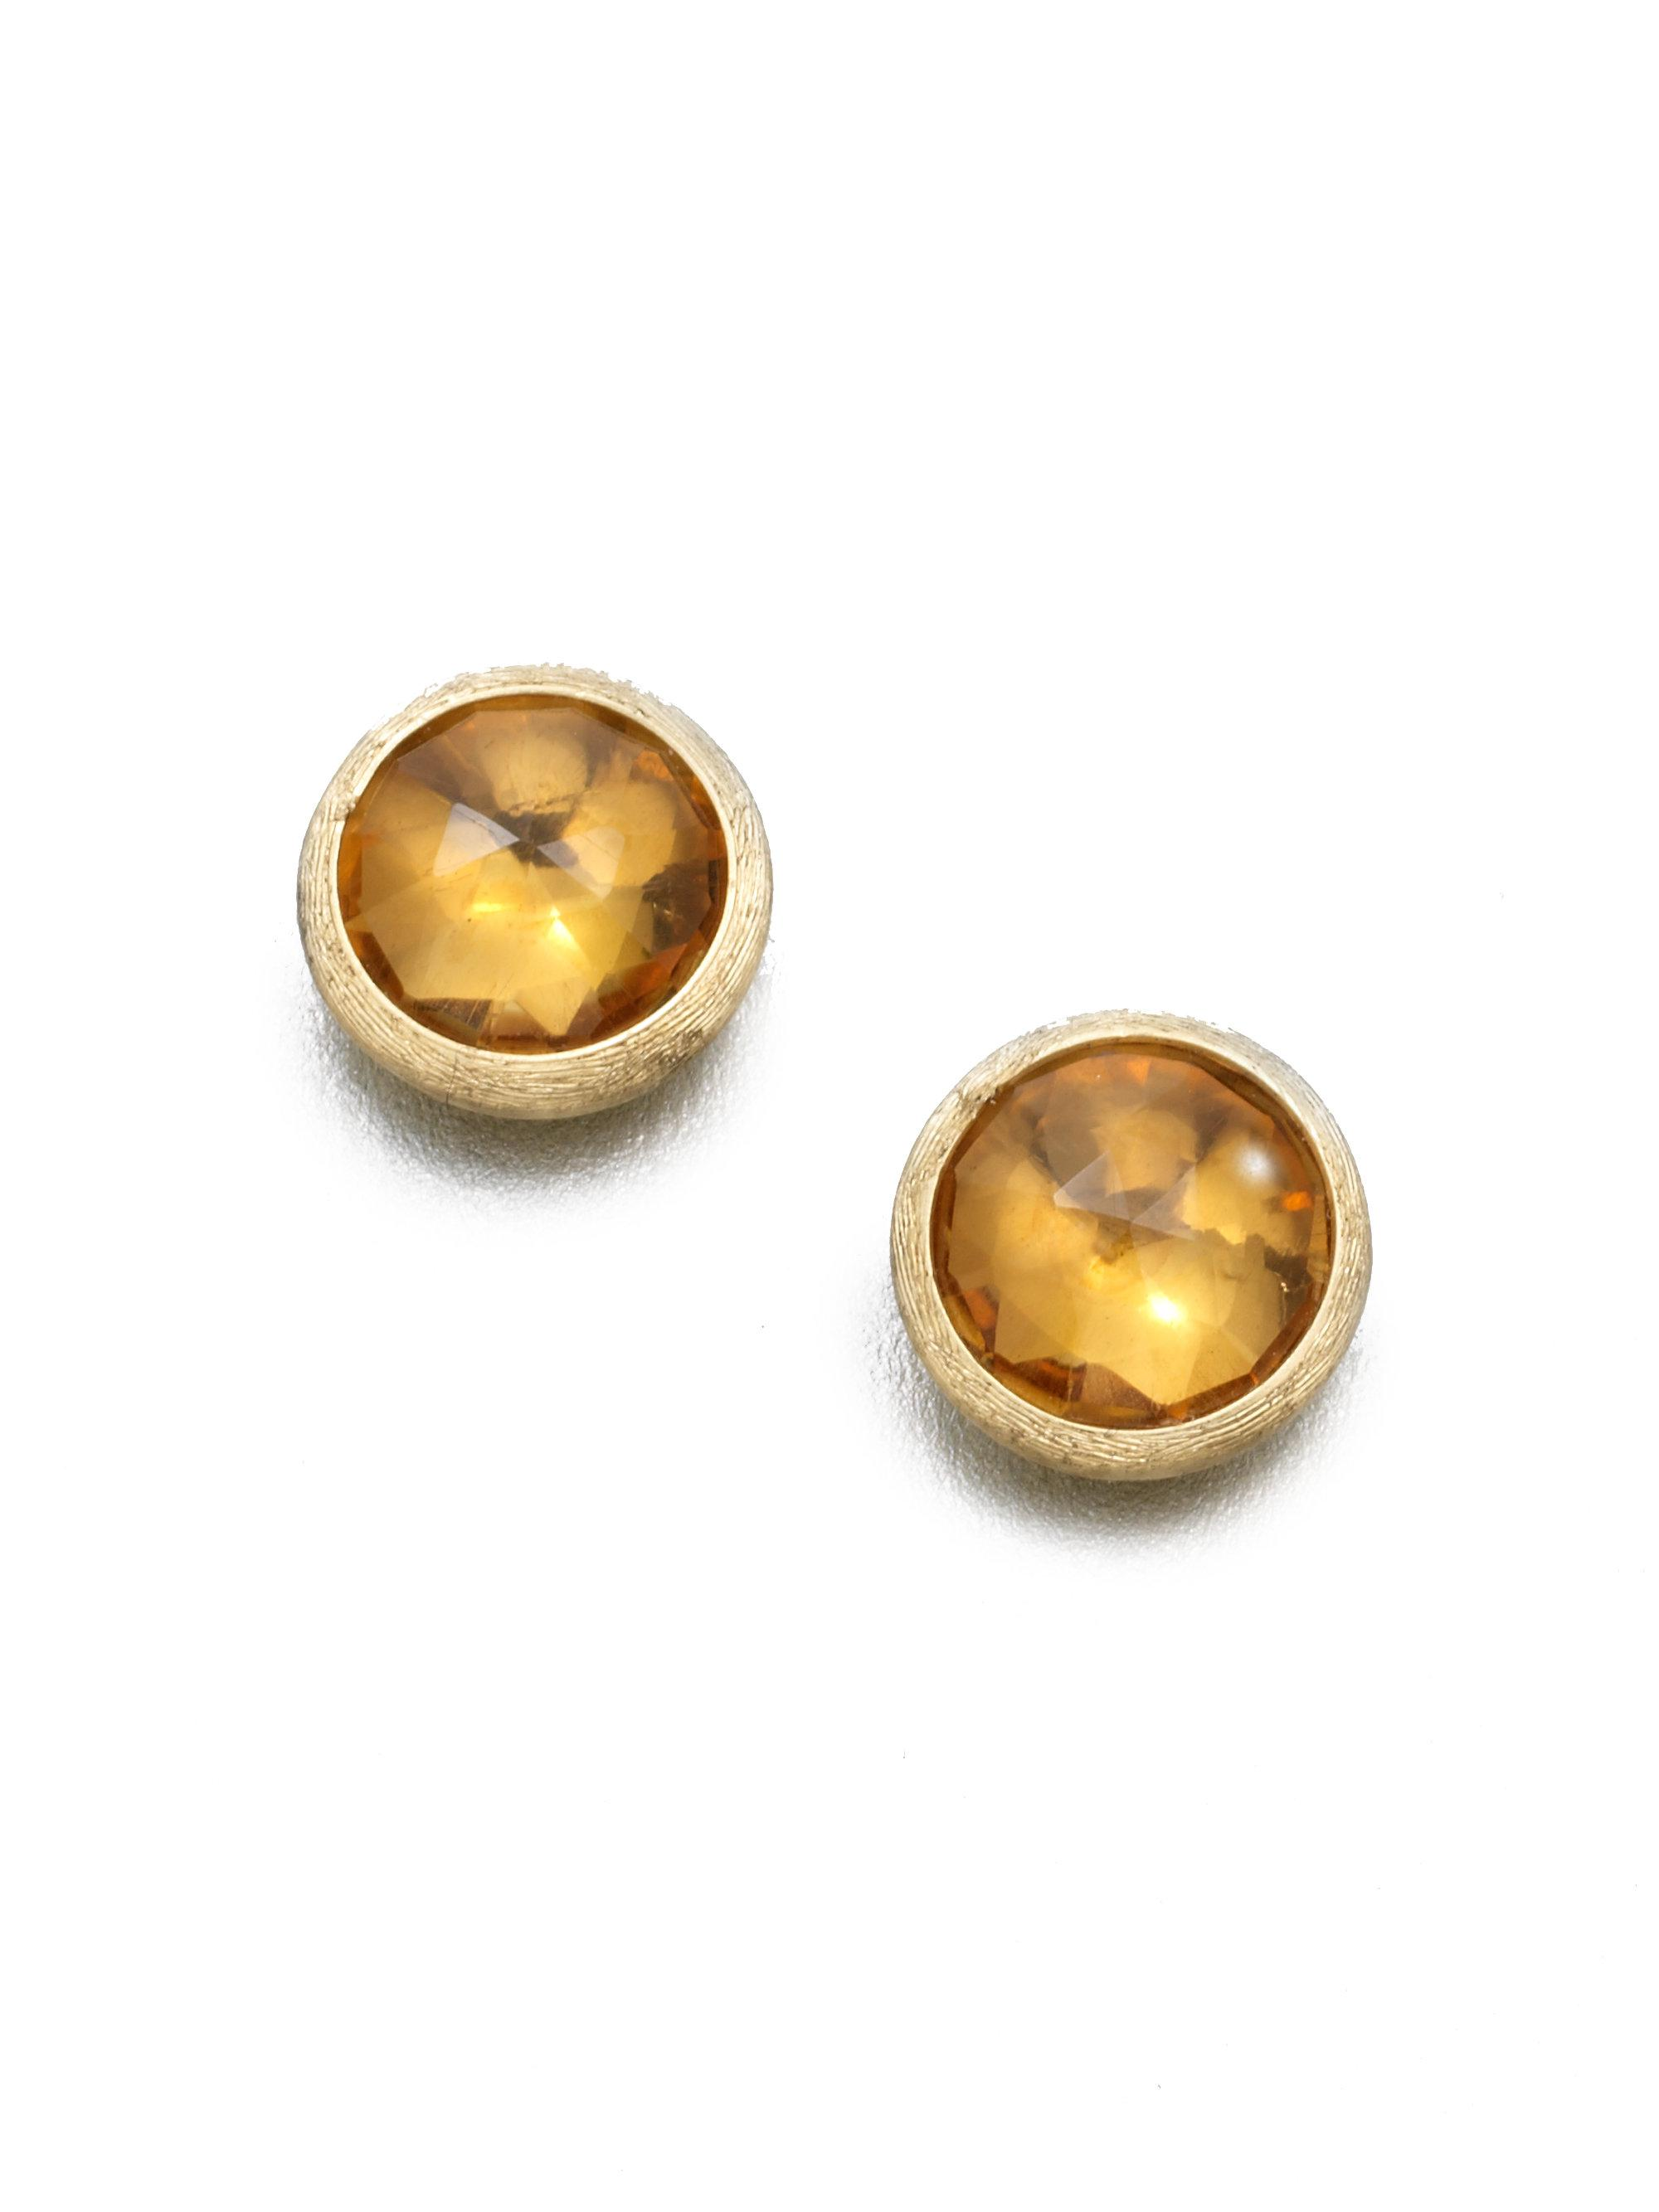 collection in earrings stud metallic gold lyst caviar view fullscreen jewelry lagos